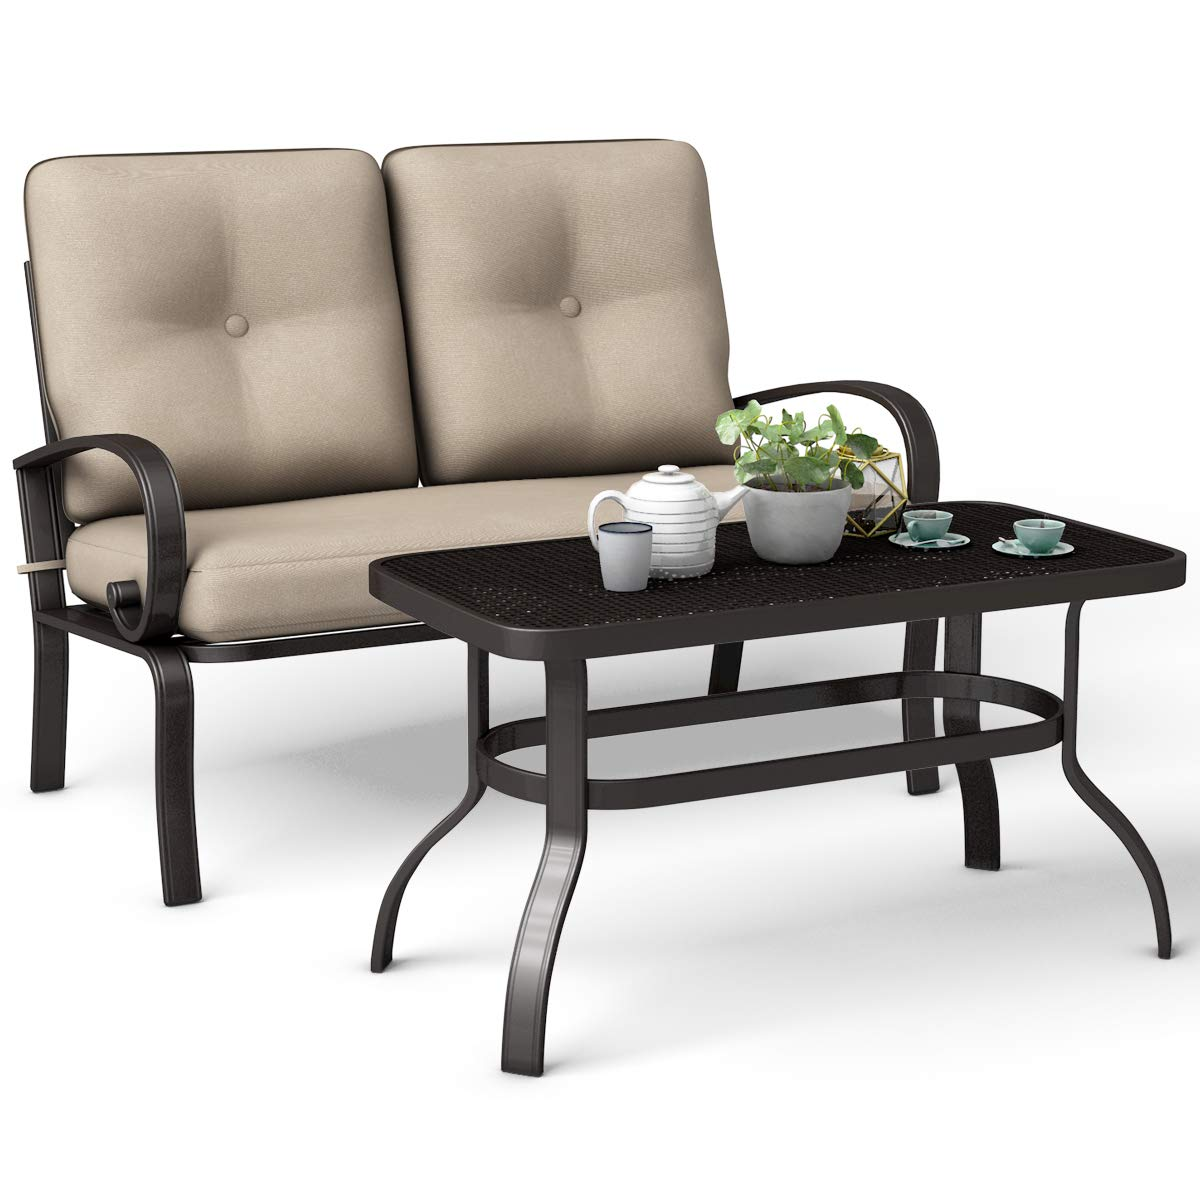 Fabulous Best Rated In Patio Loveseats Helpful Customer Reviews Andrewgaddart Wooden Chair Designs For Living Room Andrewgaddartcom